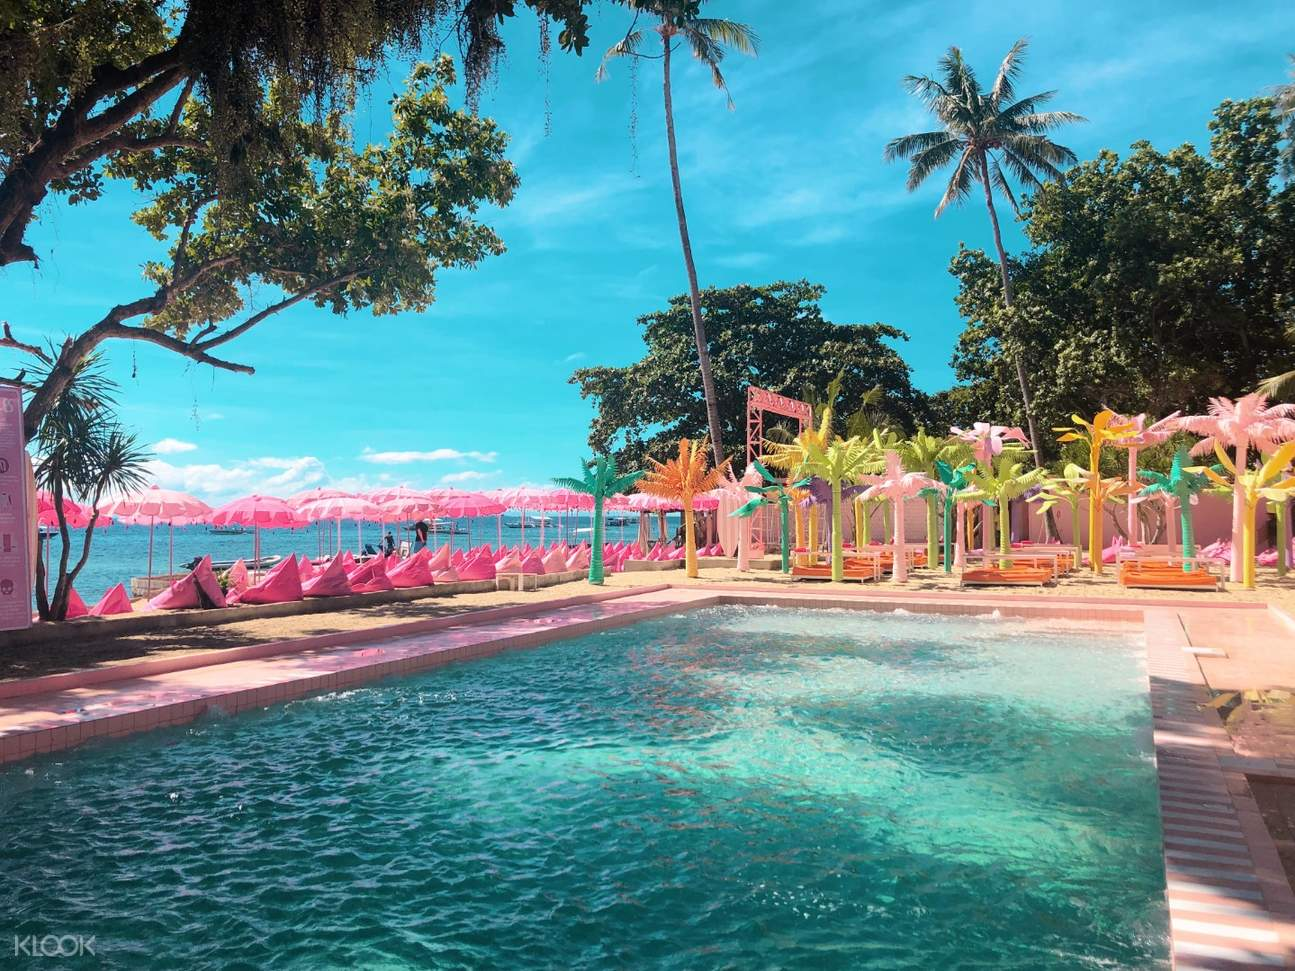 the pink pool with artificial rainbow colored trees and pink loungers surrounding it